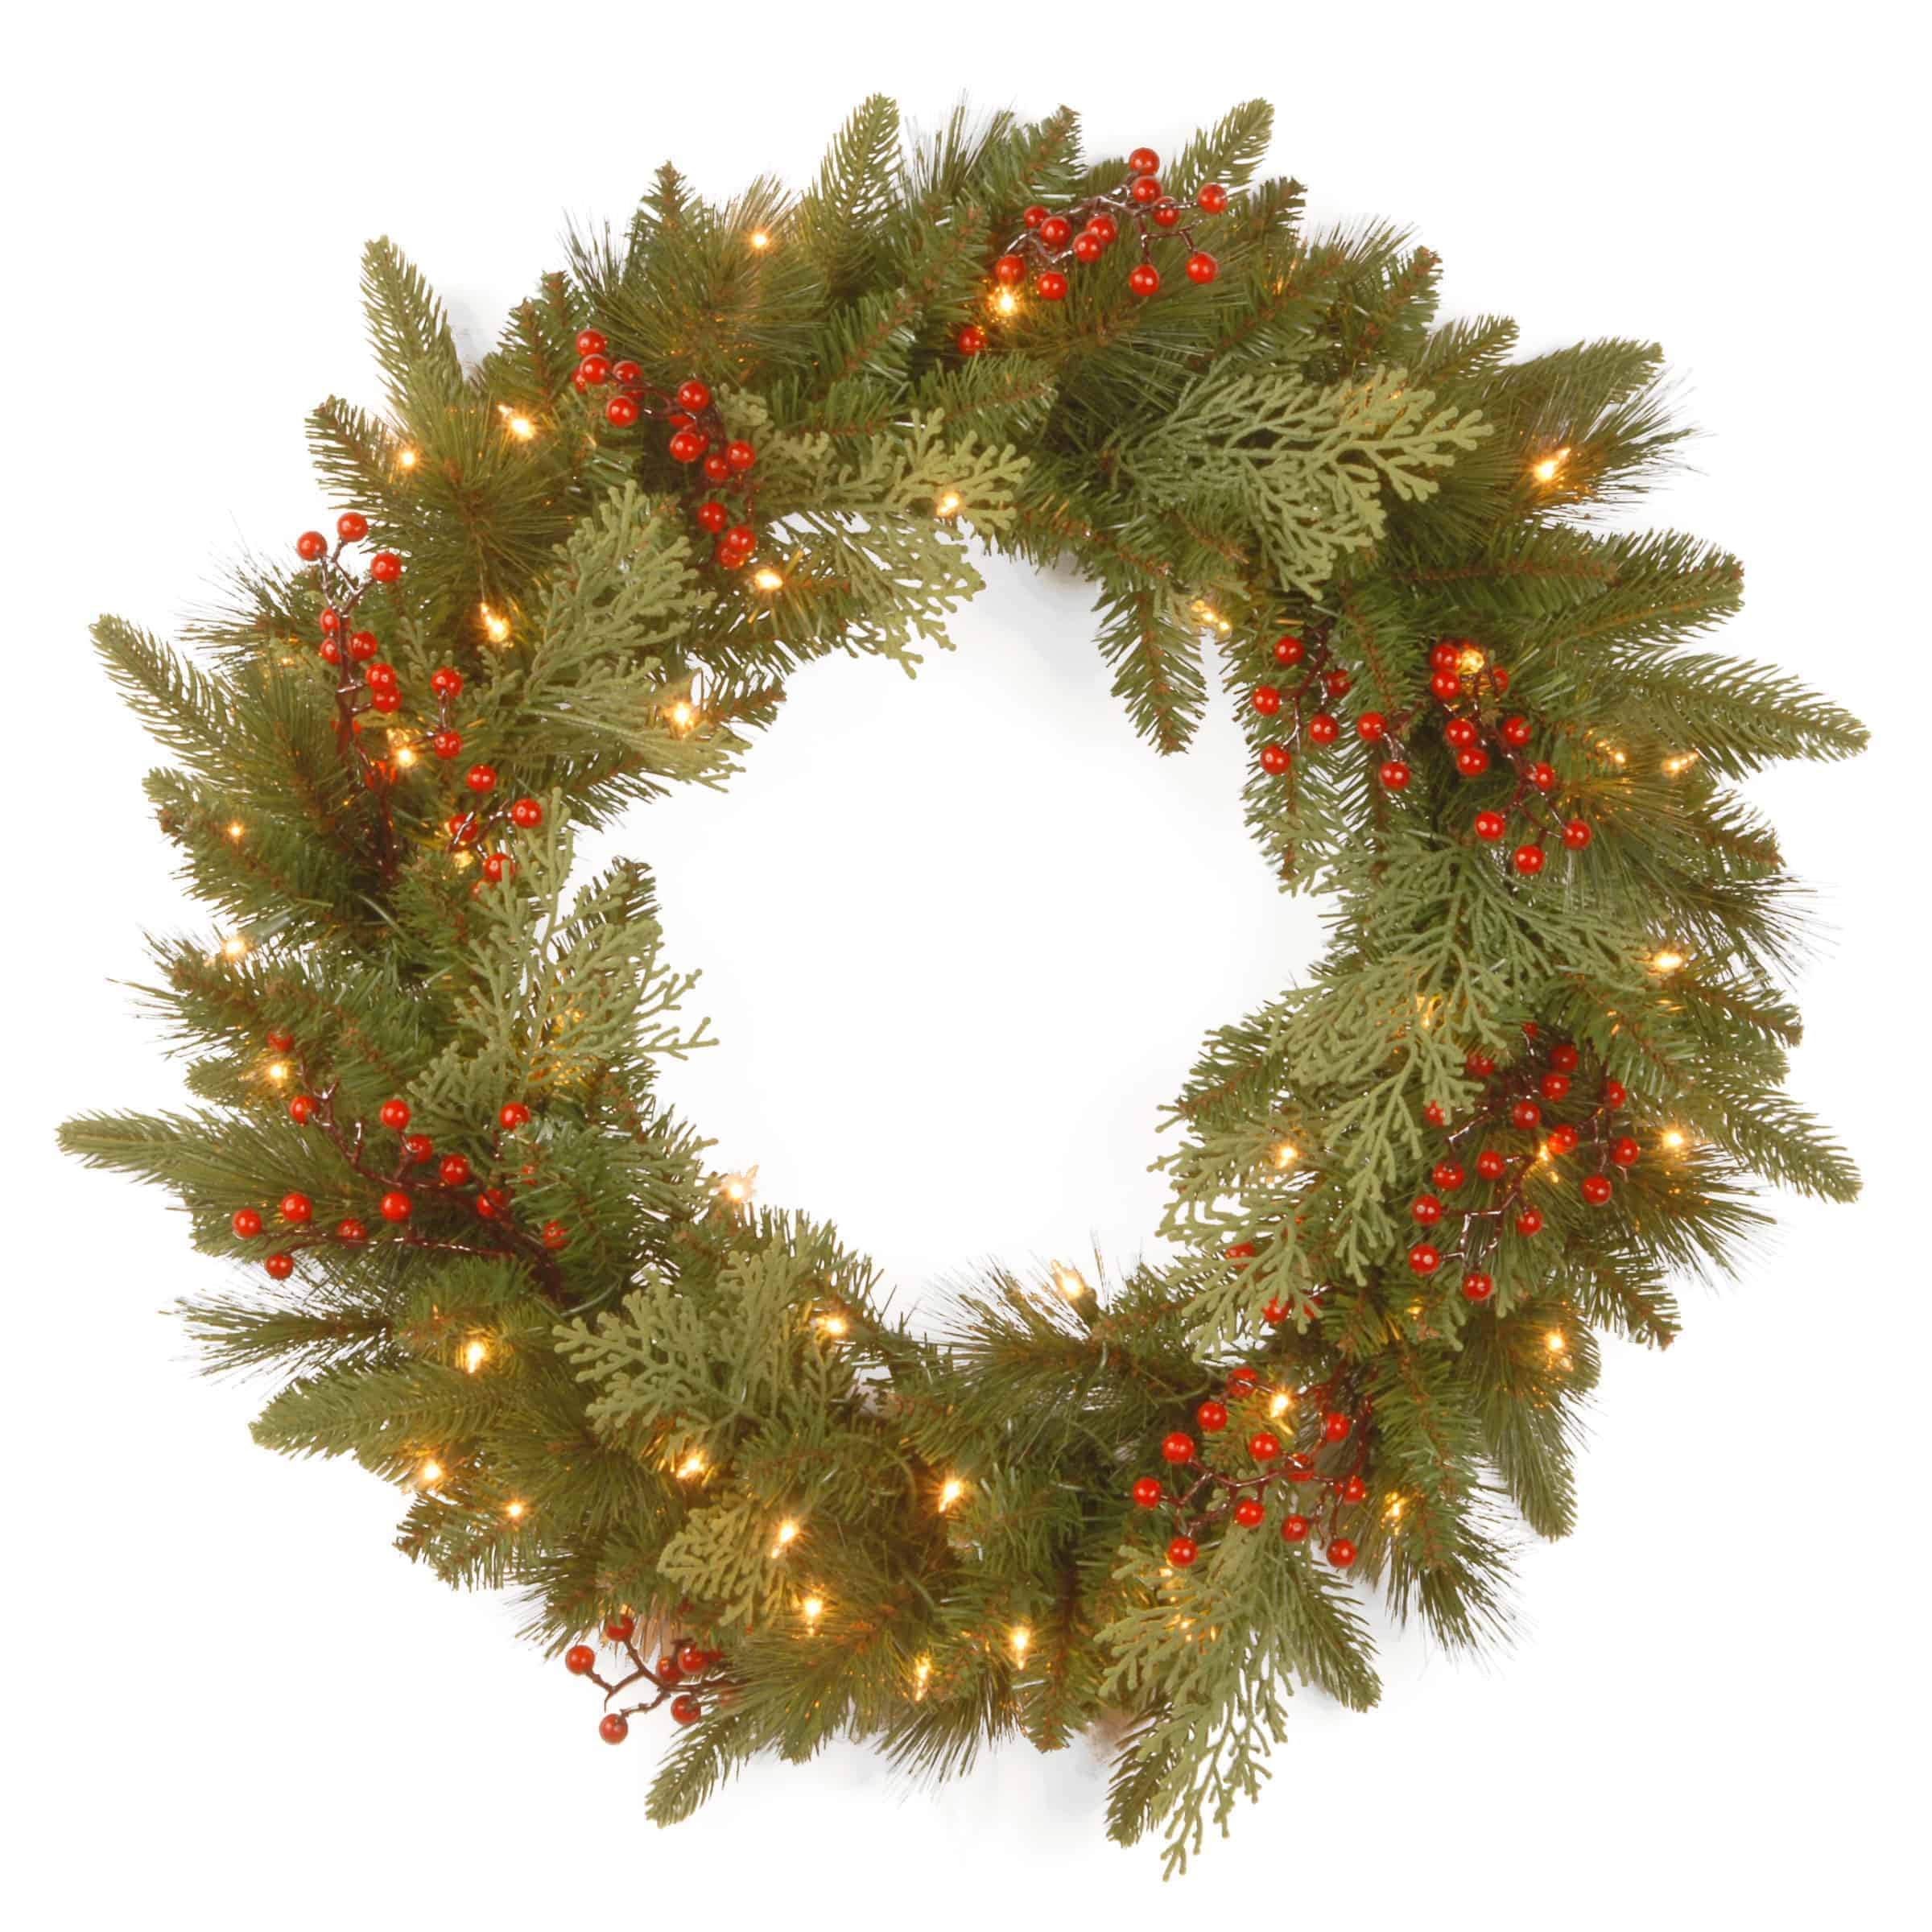 Christmas Wreath.30 76cm Classical Collection Christmas Wreath With Warm Led Lights